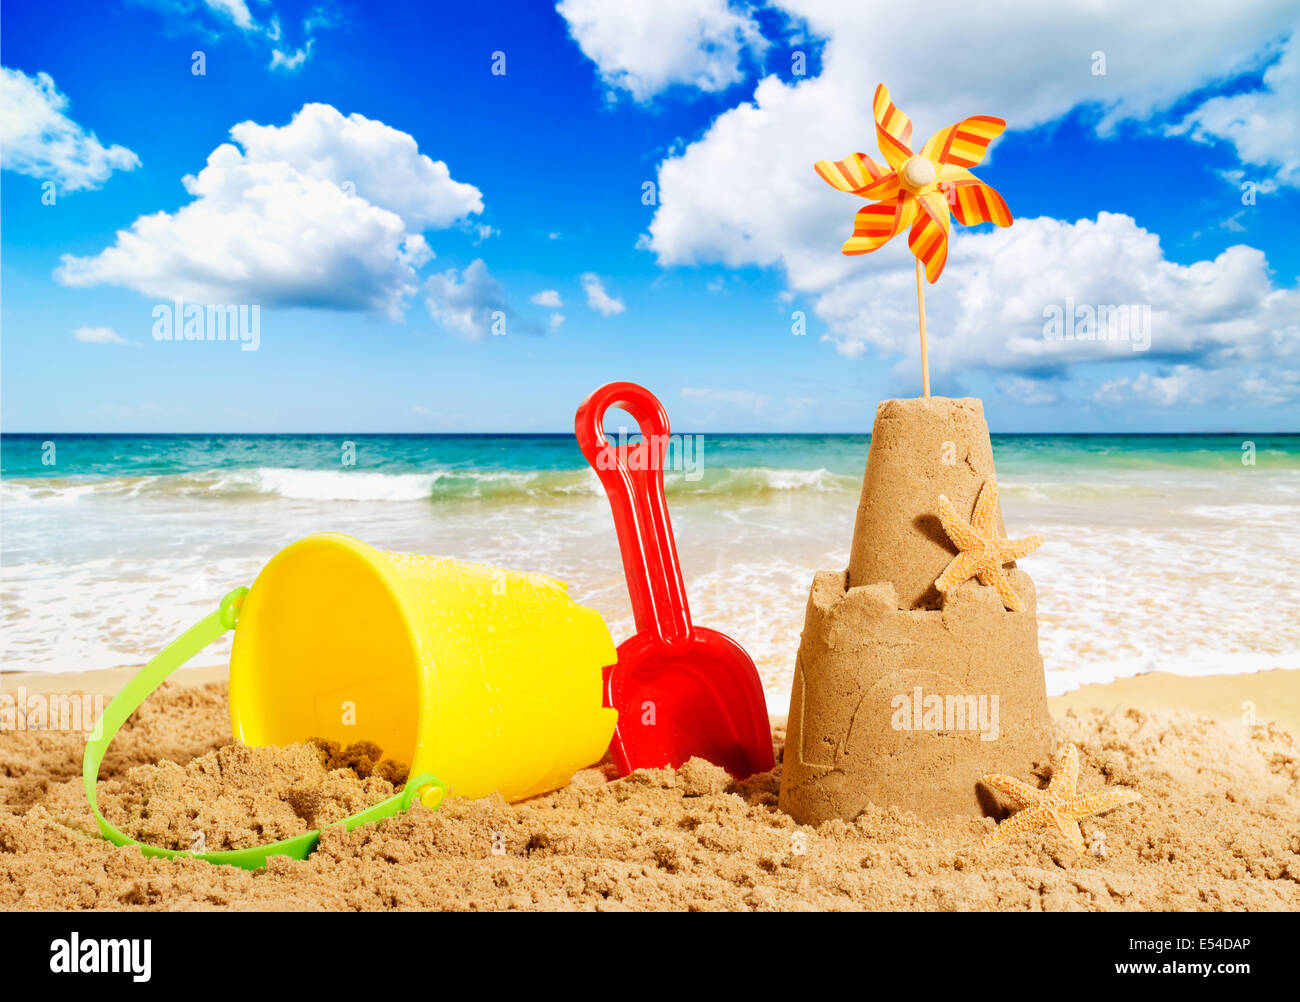 Sandcastles At The Beach With Bucket And Spade Stock Photo